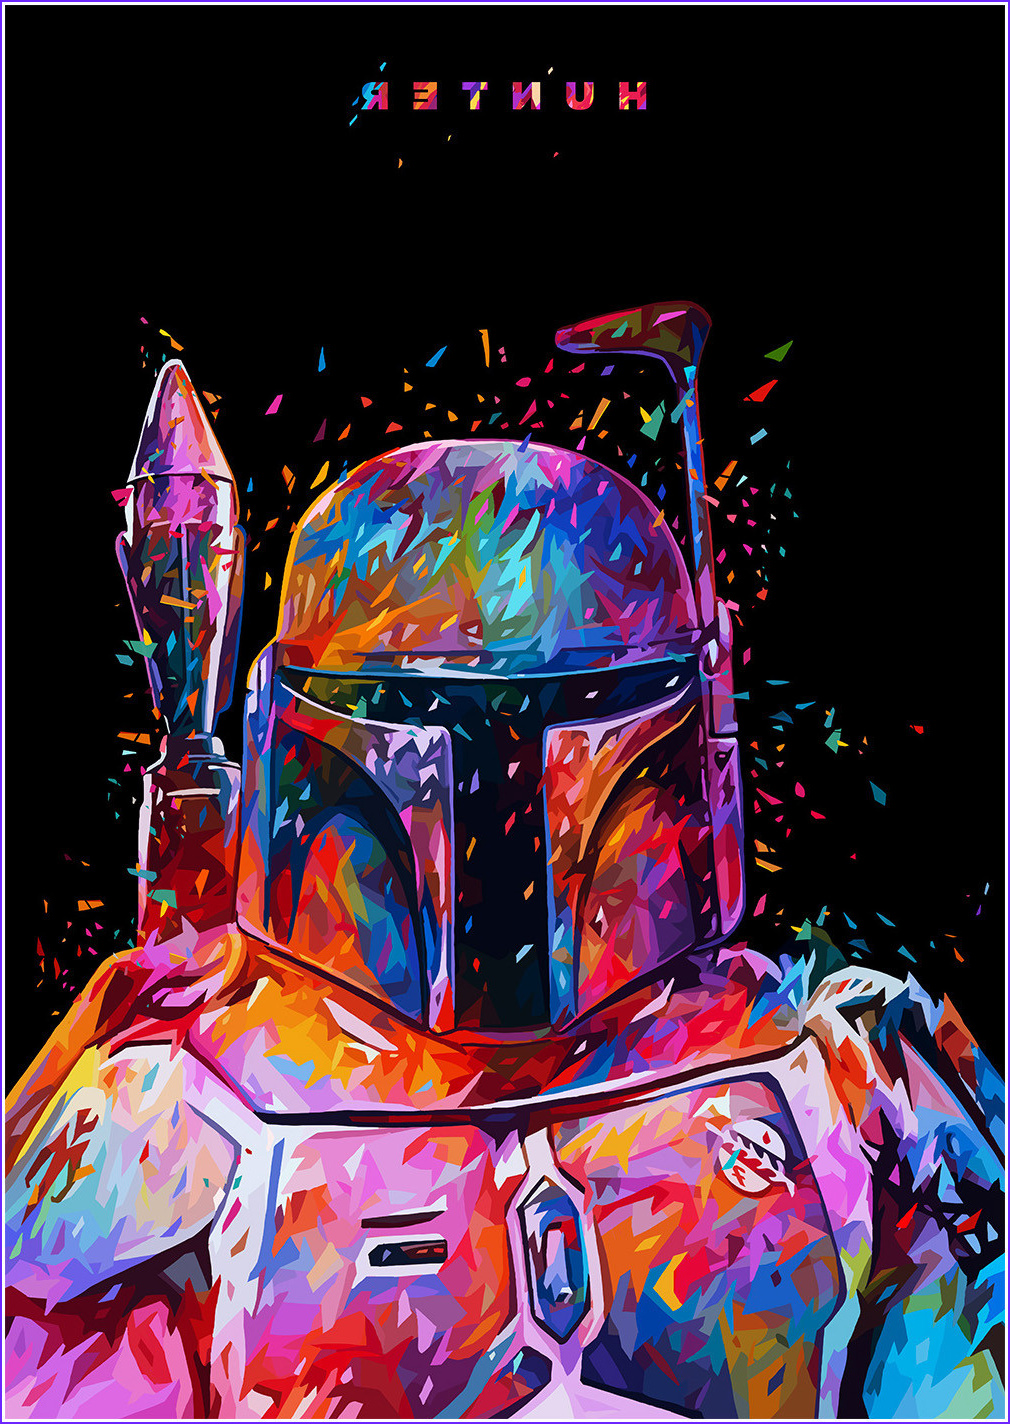 posters abstract color star wars